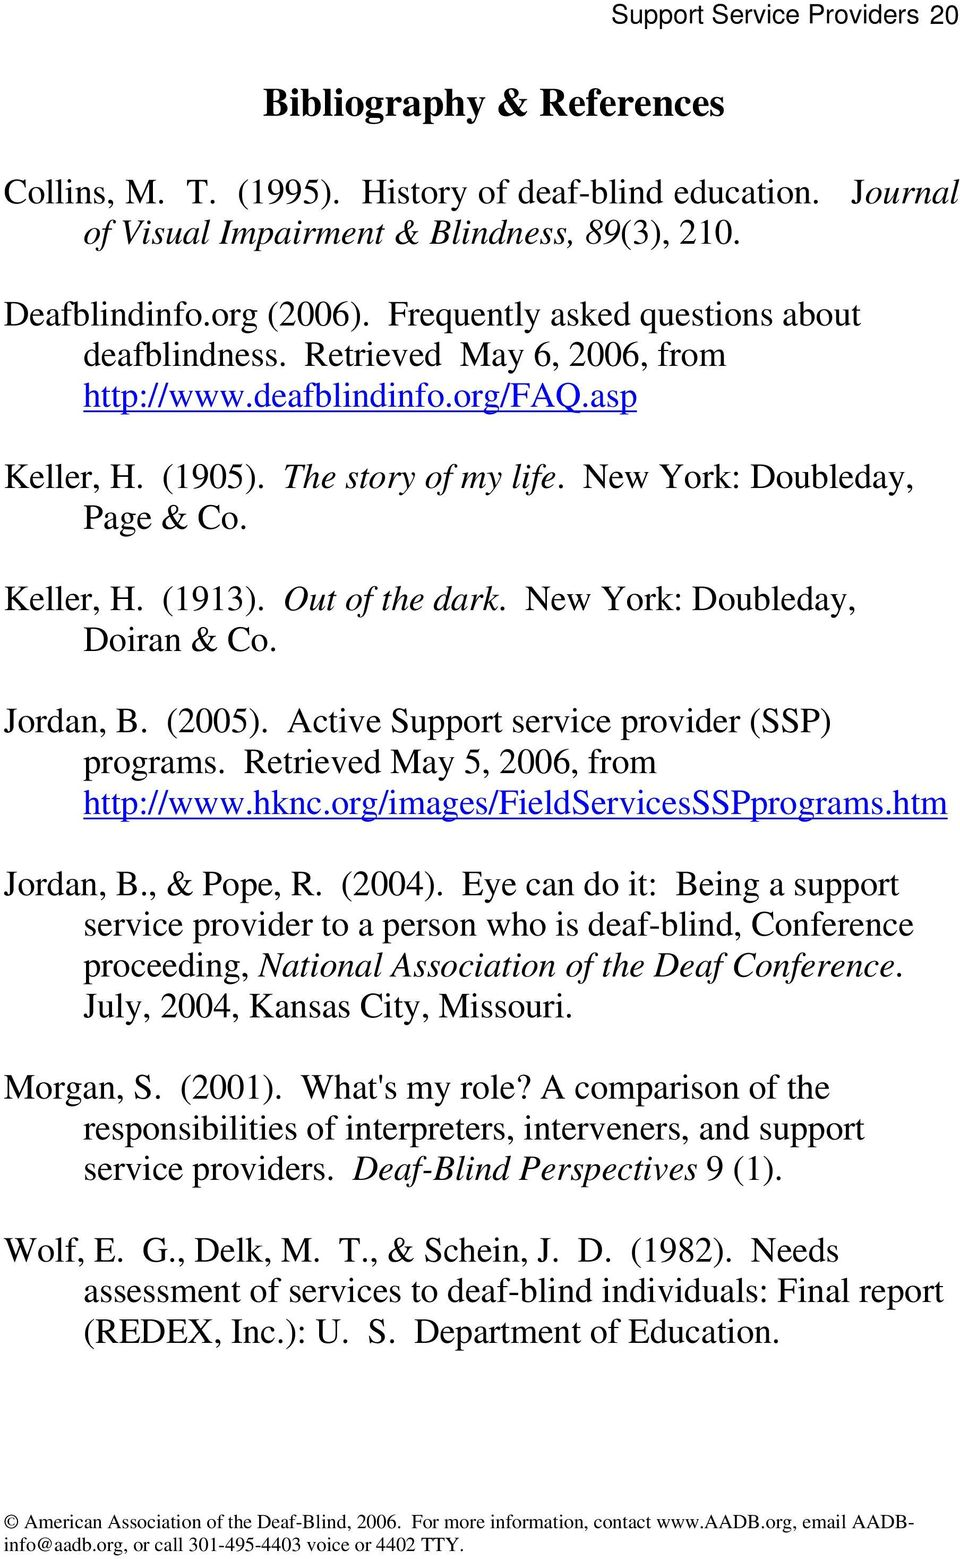 Out of the dark. New York: Doubleday, Doiran & Co. Jordan, B. (2005). Active Support service provider (SSP) programs. Retrieved May 5, 2006, from http://www.hknc.org/images/fieldservicessspprograms.